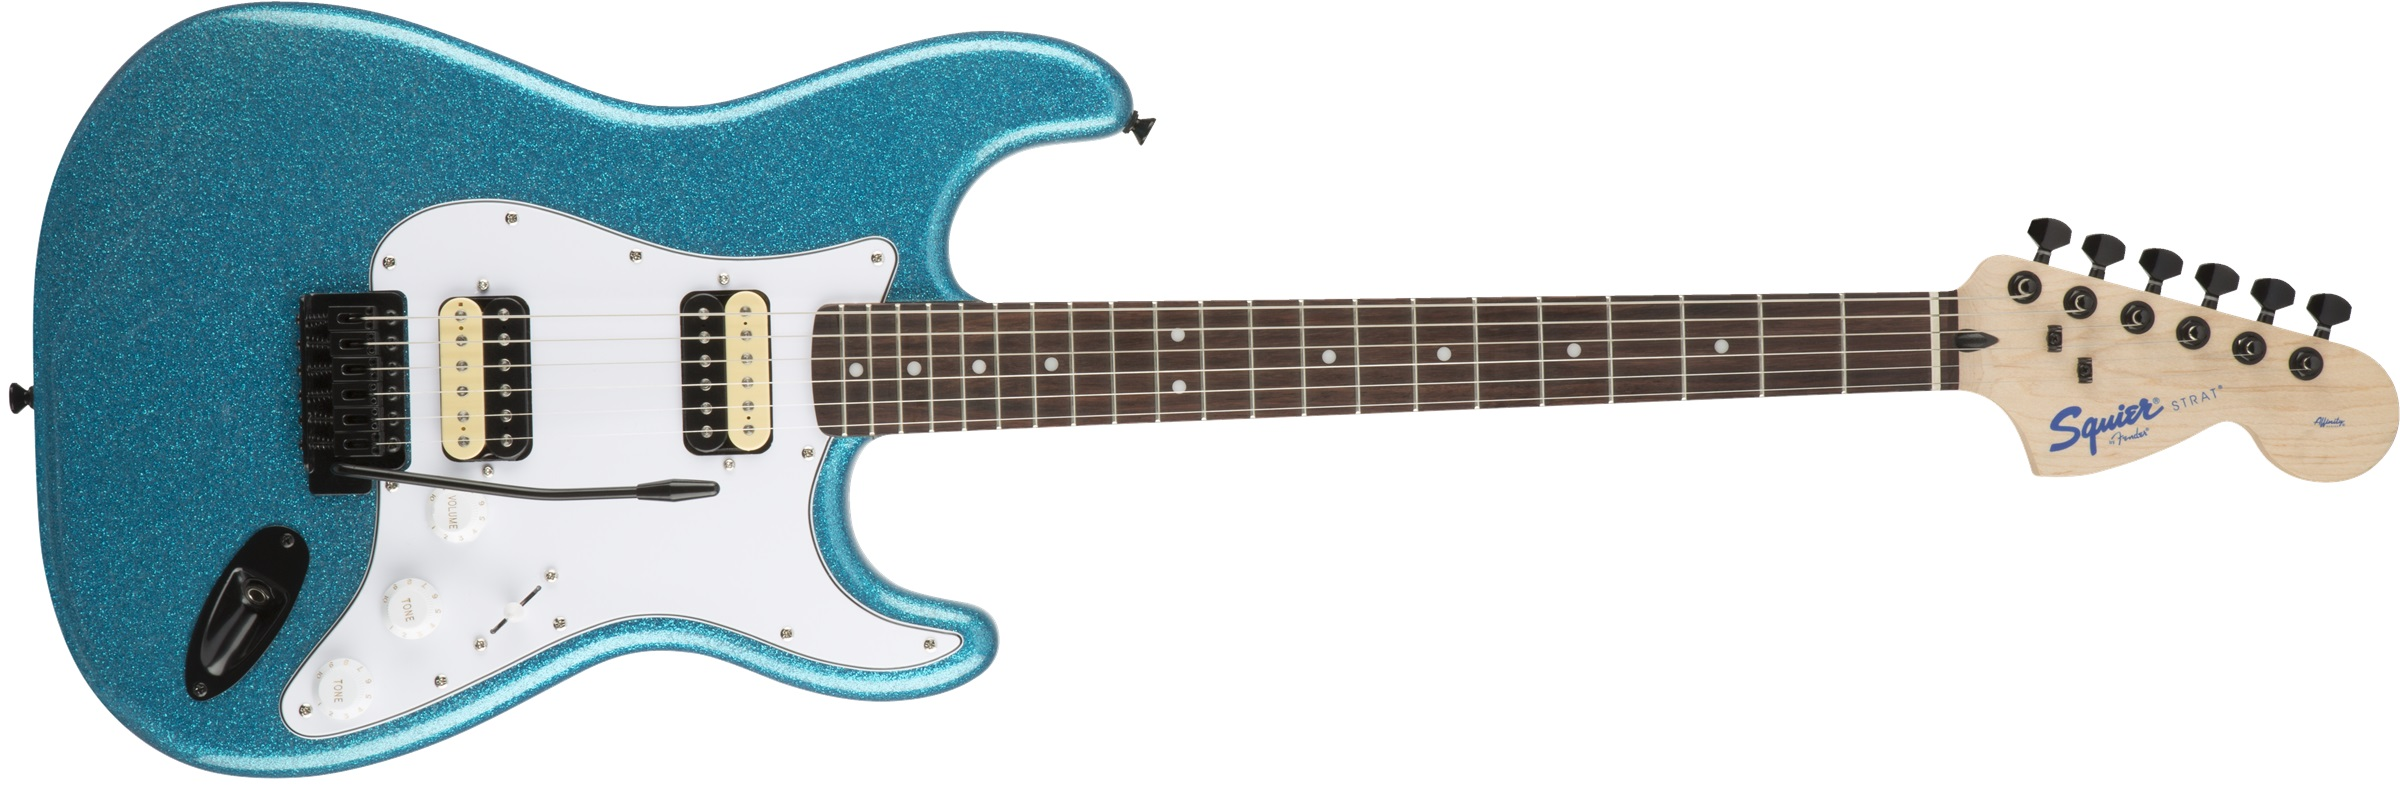 Fender Squier Affinity Stratocaster Candy Blue